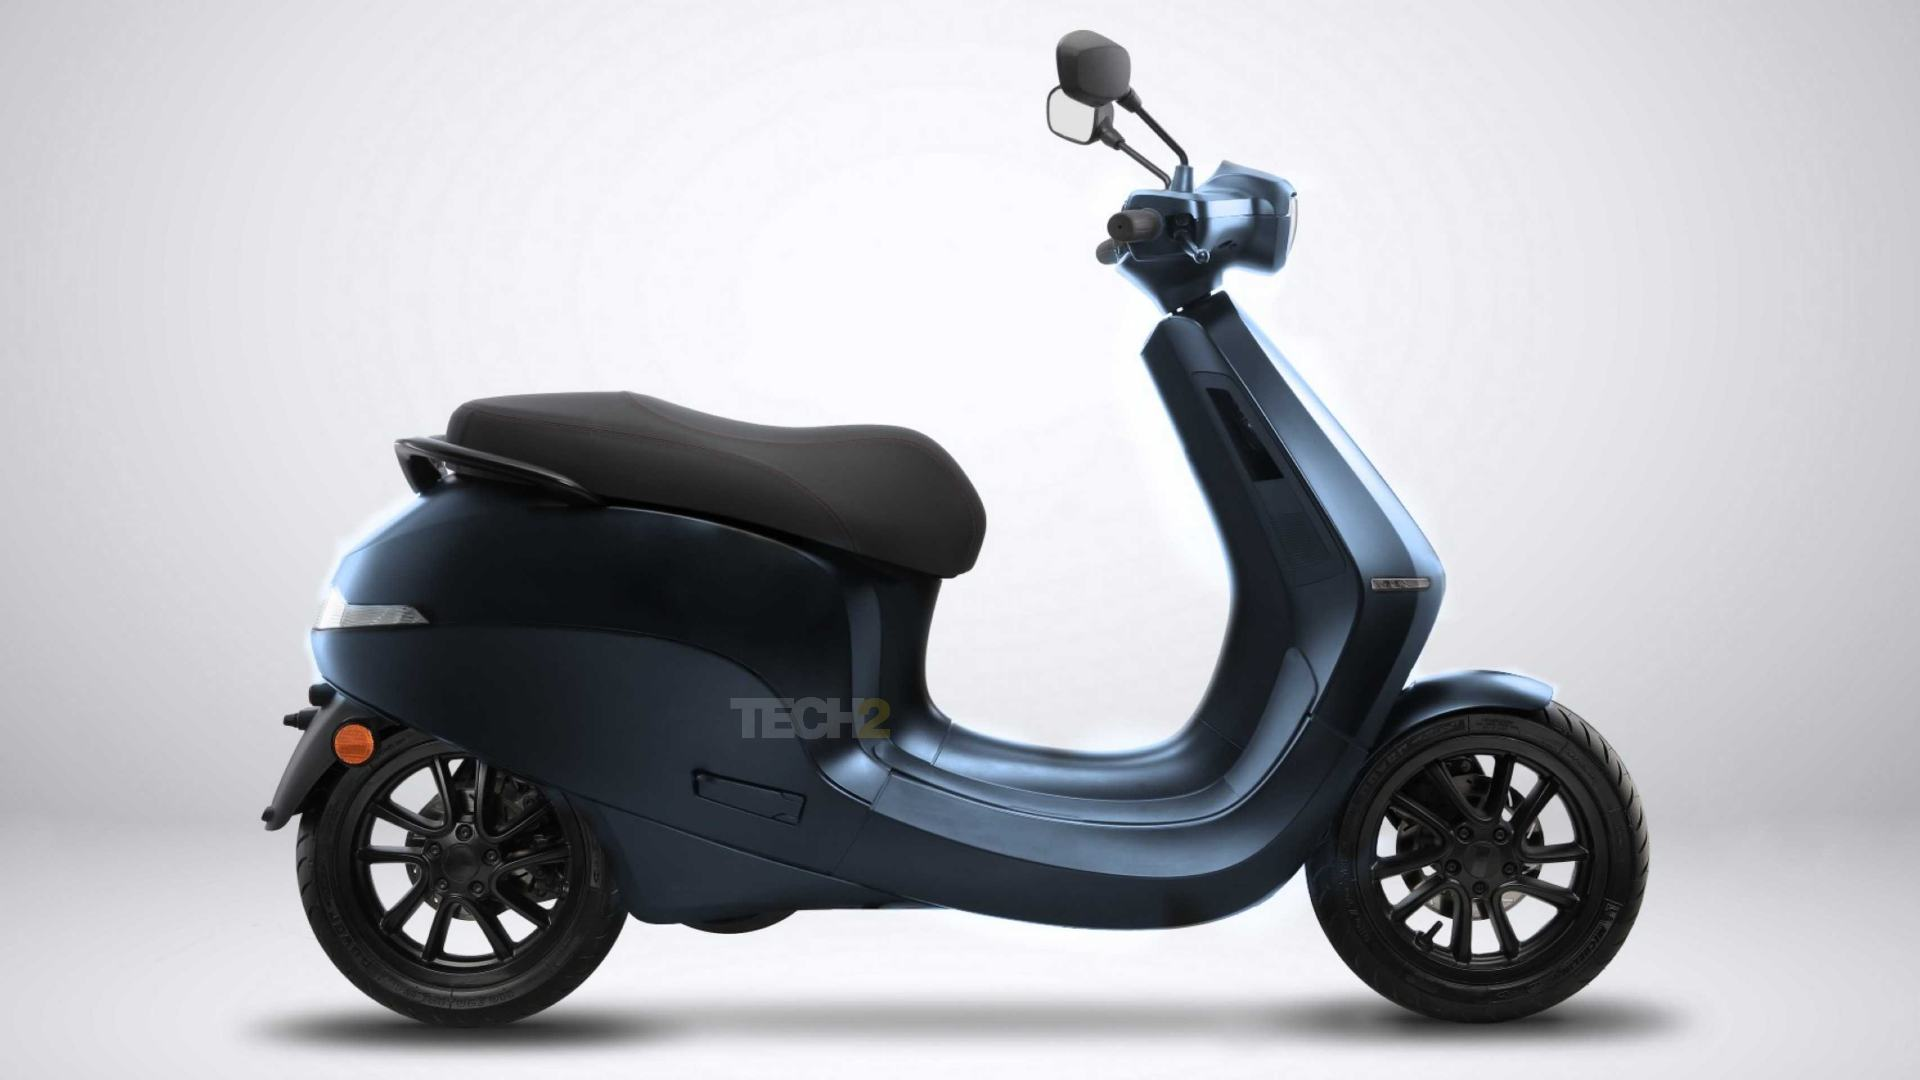 The Ola electric scooter is expected to available in three versions - Series S, S1 and S1 Pro. Image: Ola Electric/Tech2